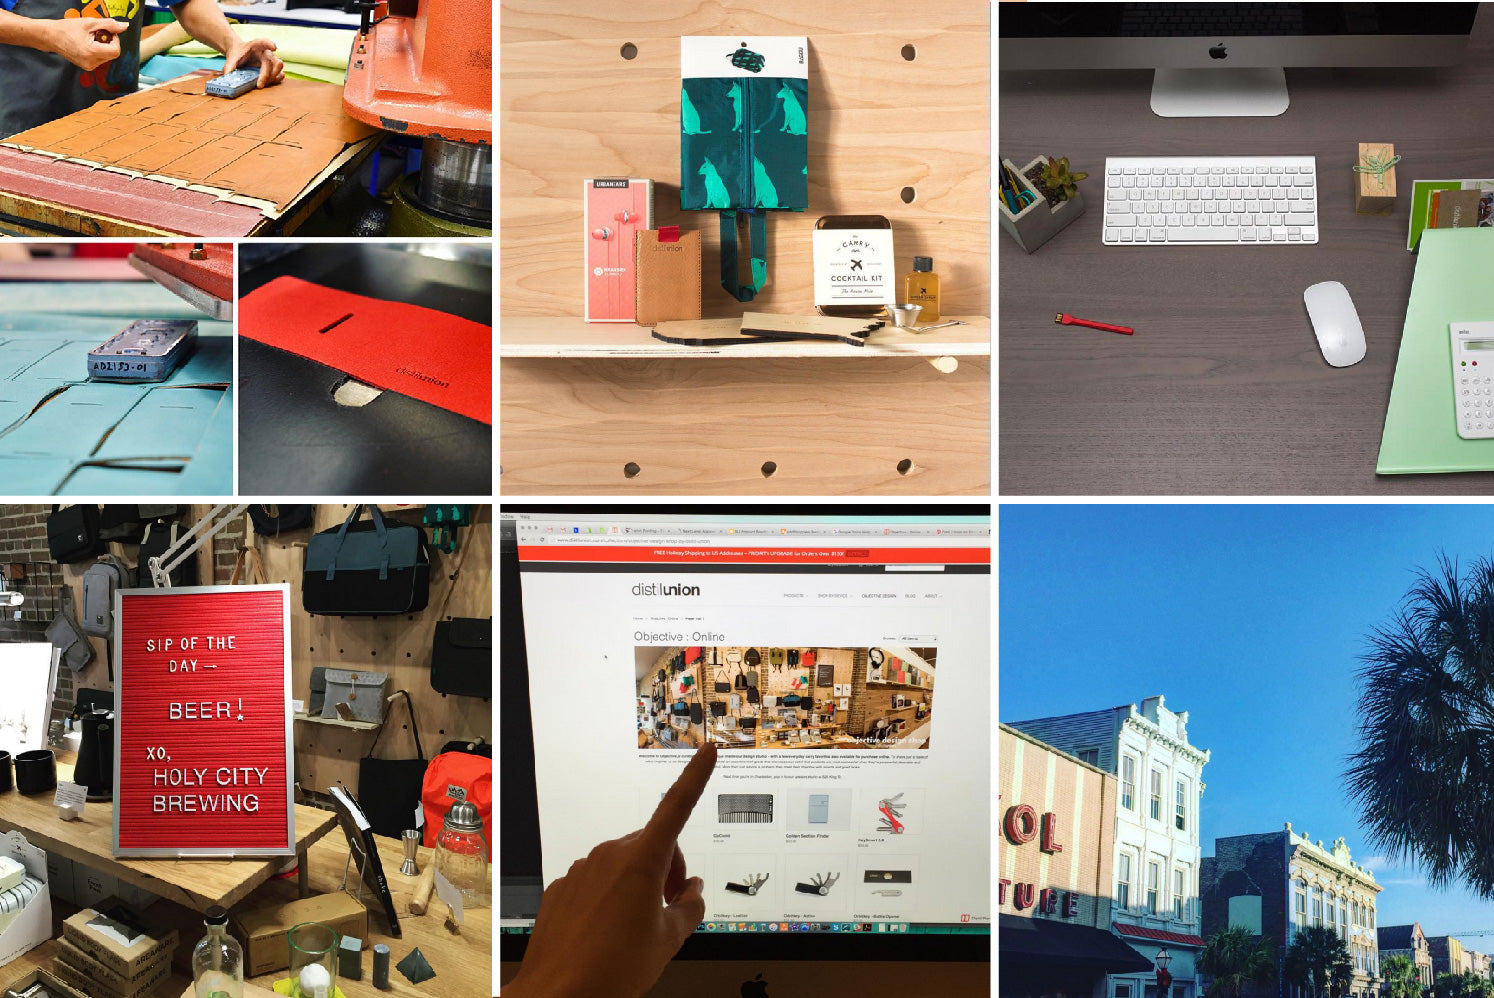 Distil Union's December Instagram Highlights